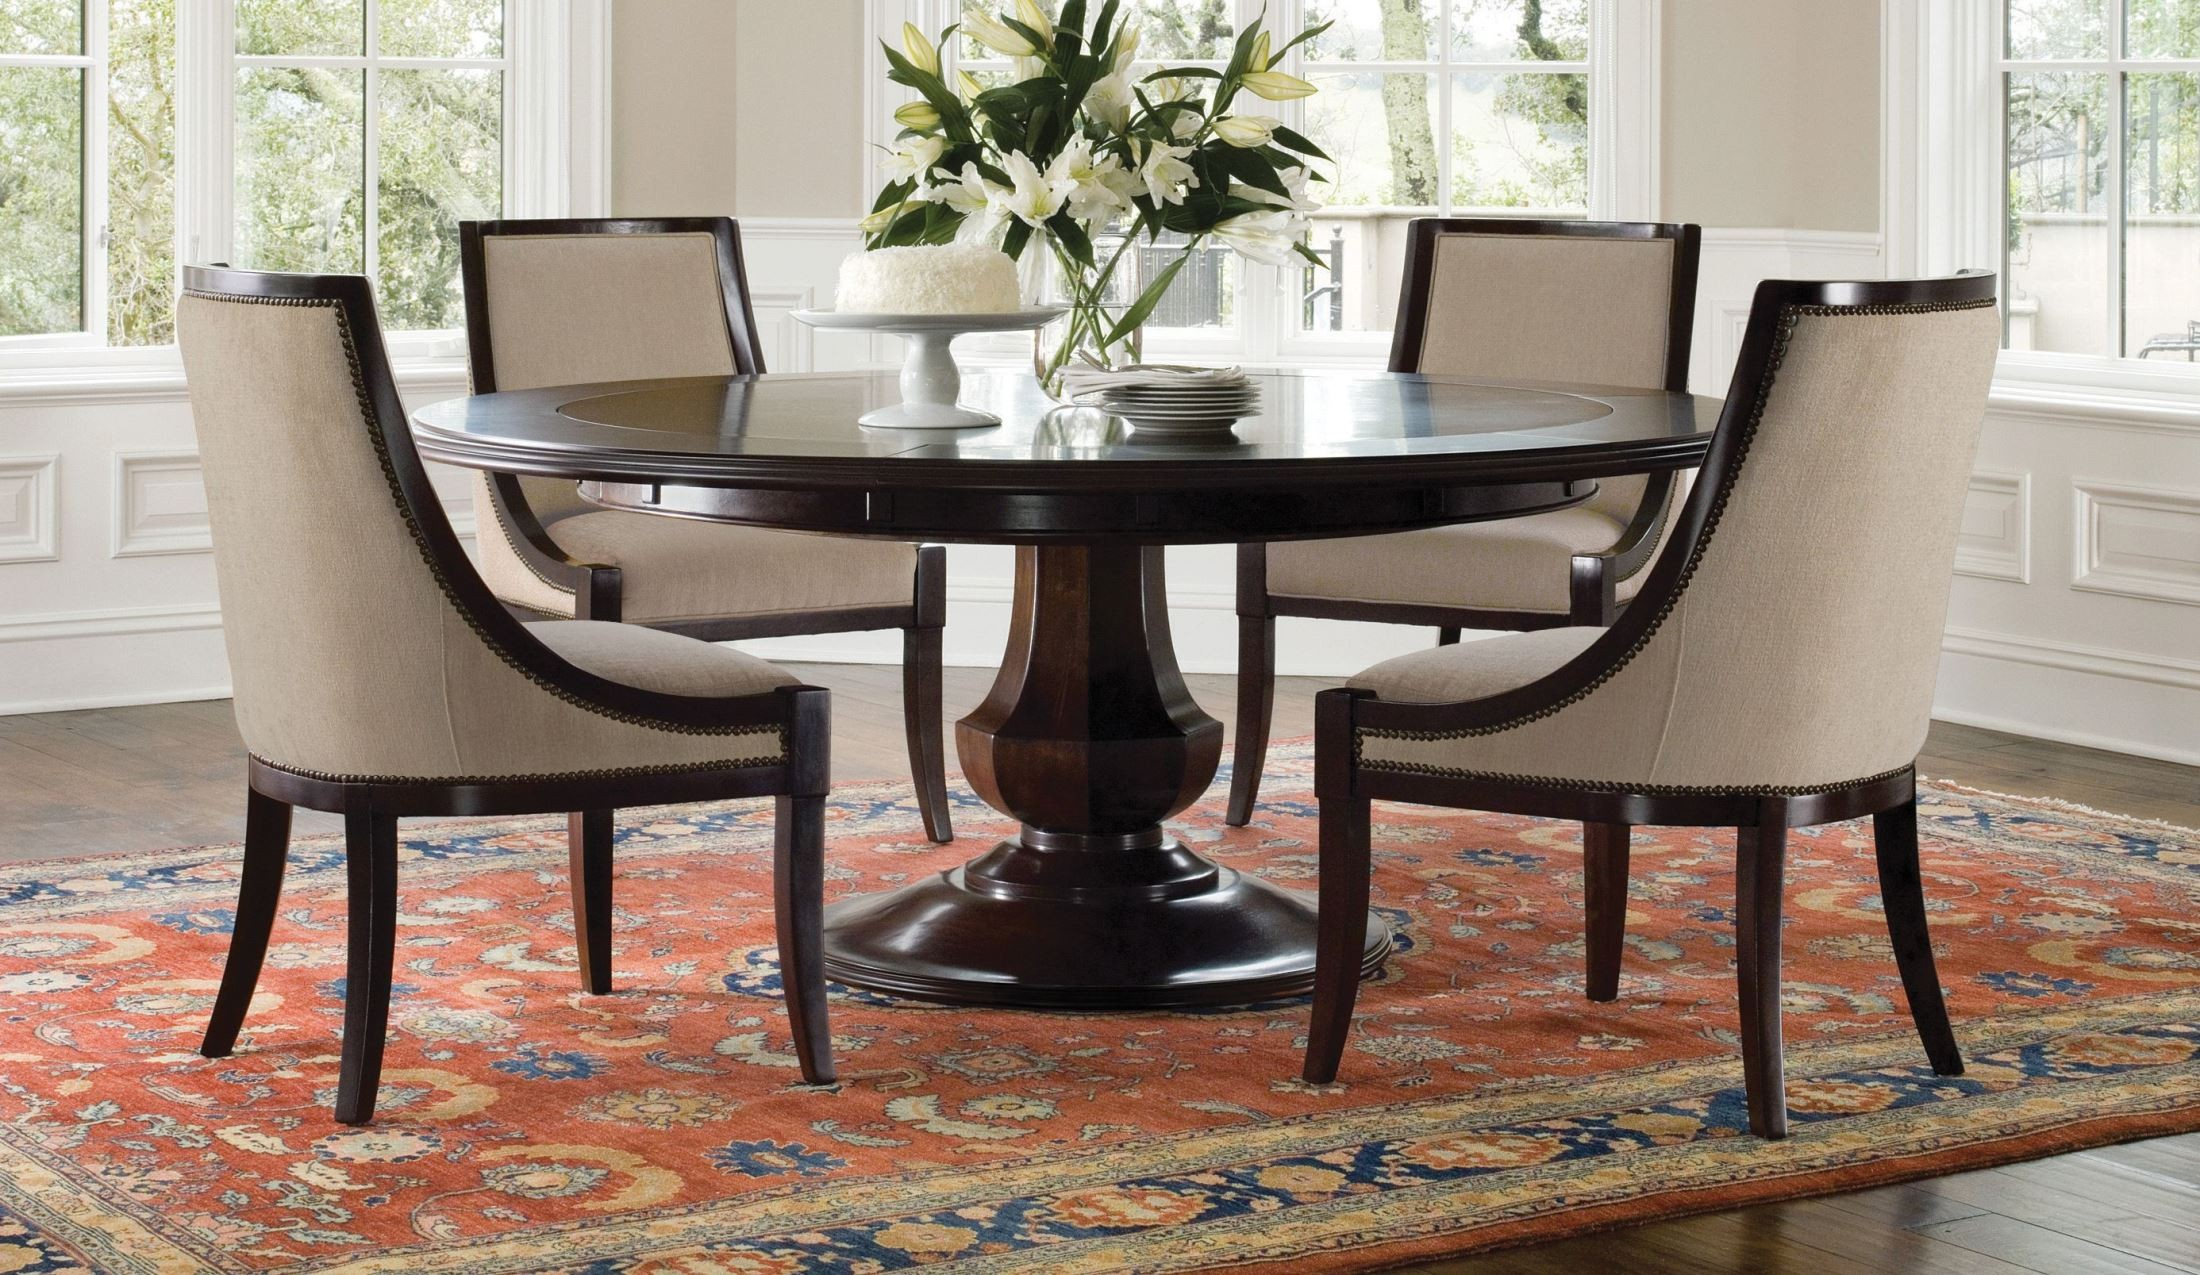 Sienna Dining Room Set From Brownstone SNV302 Coleman Furniture